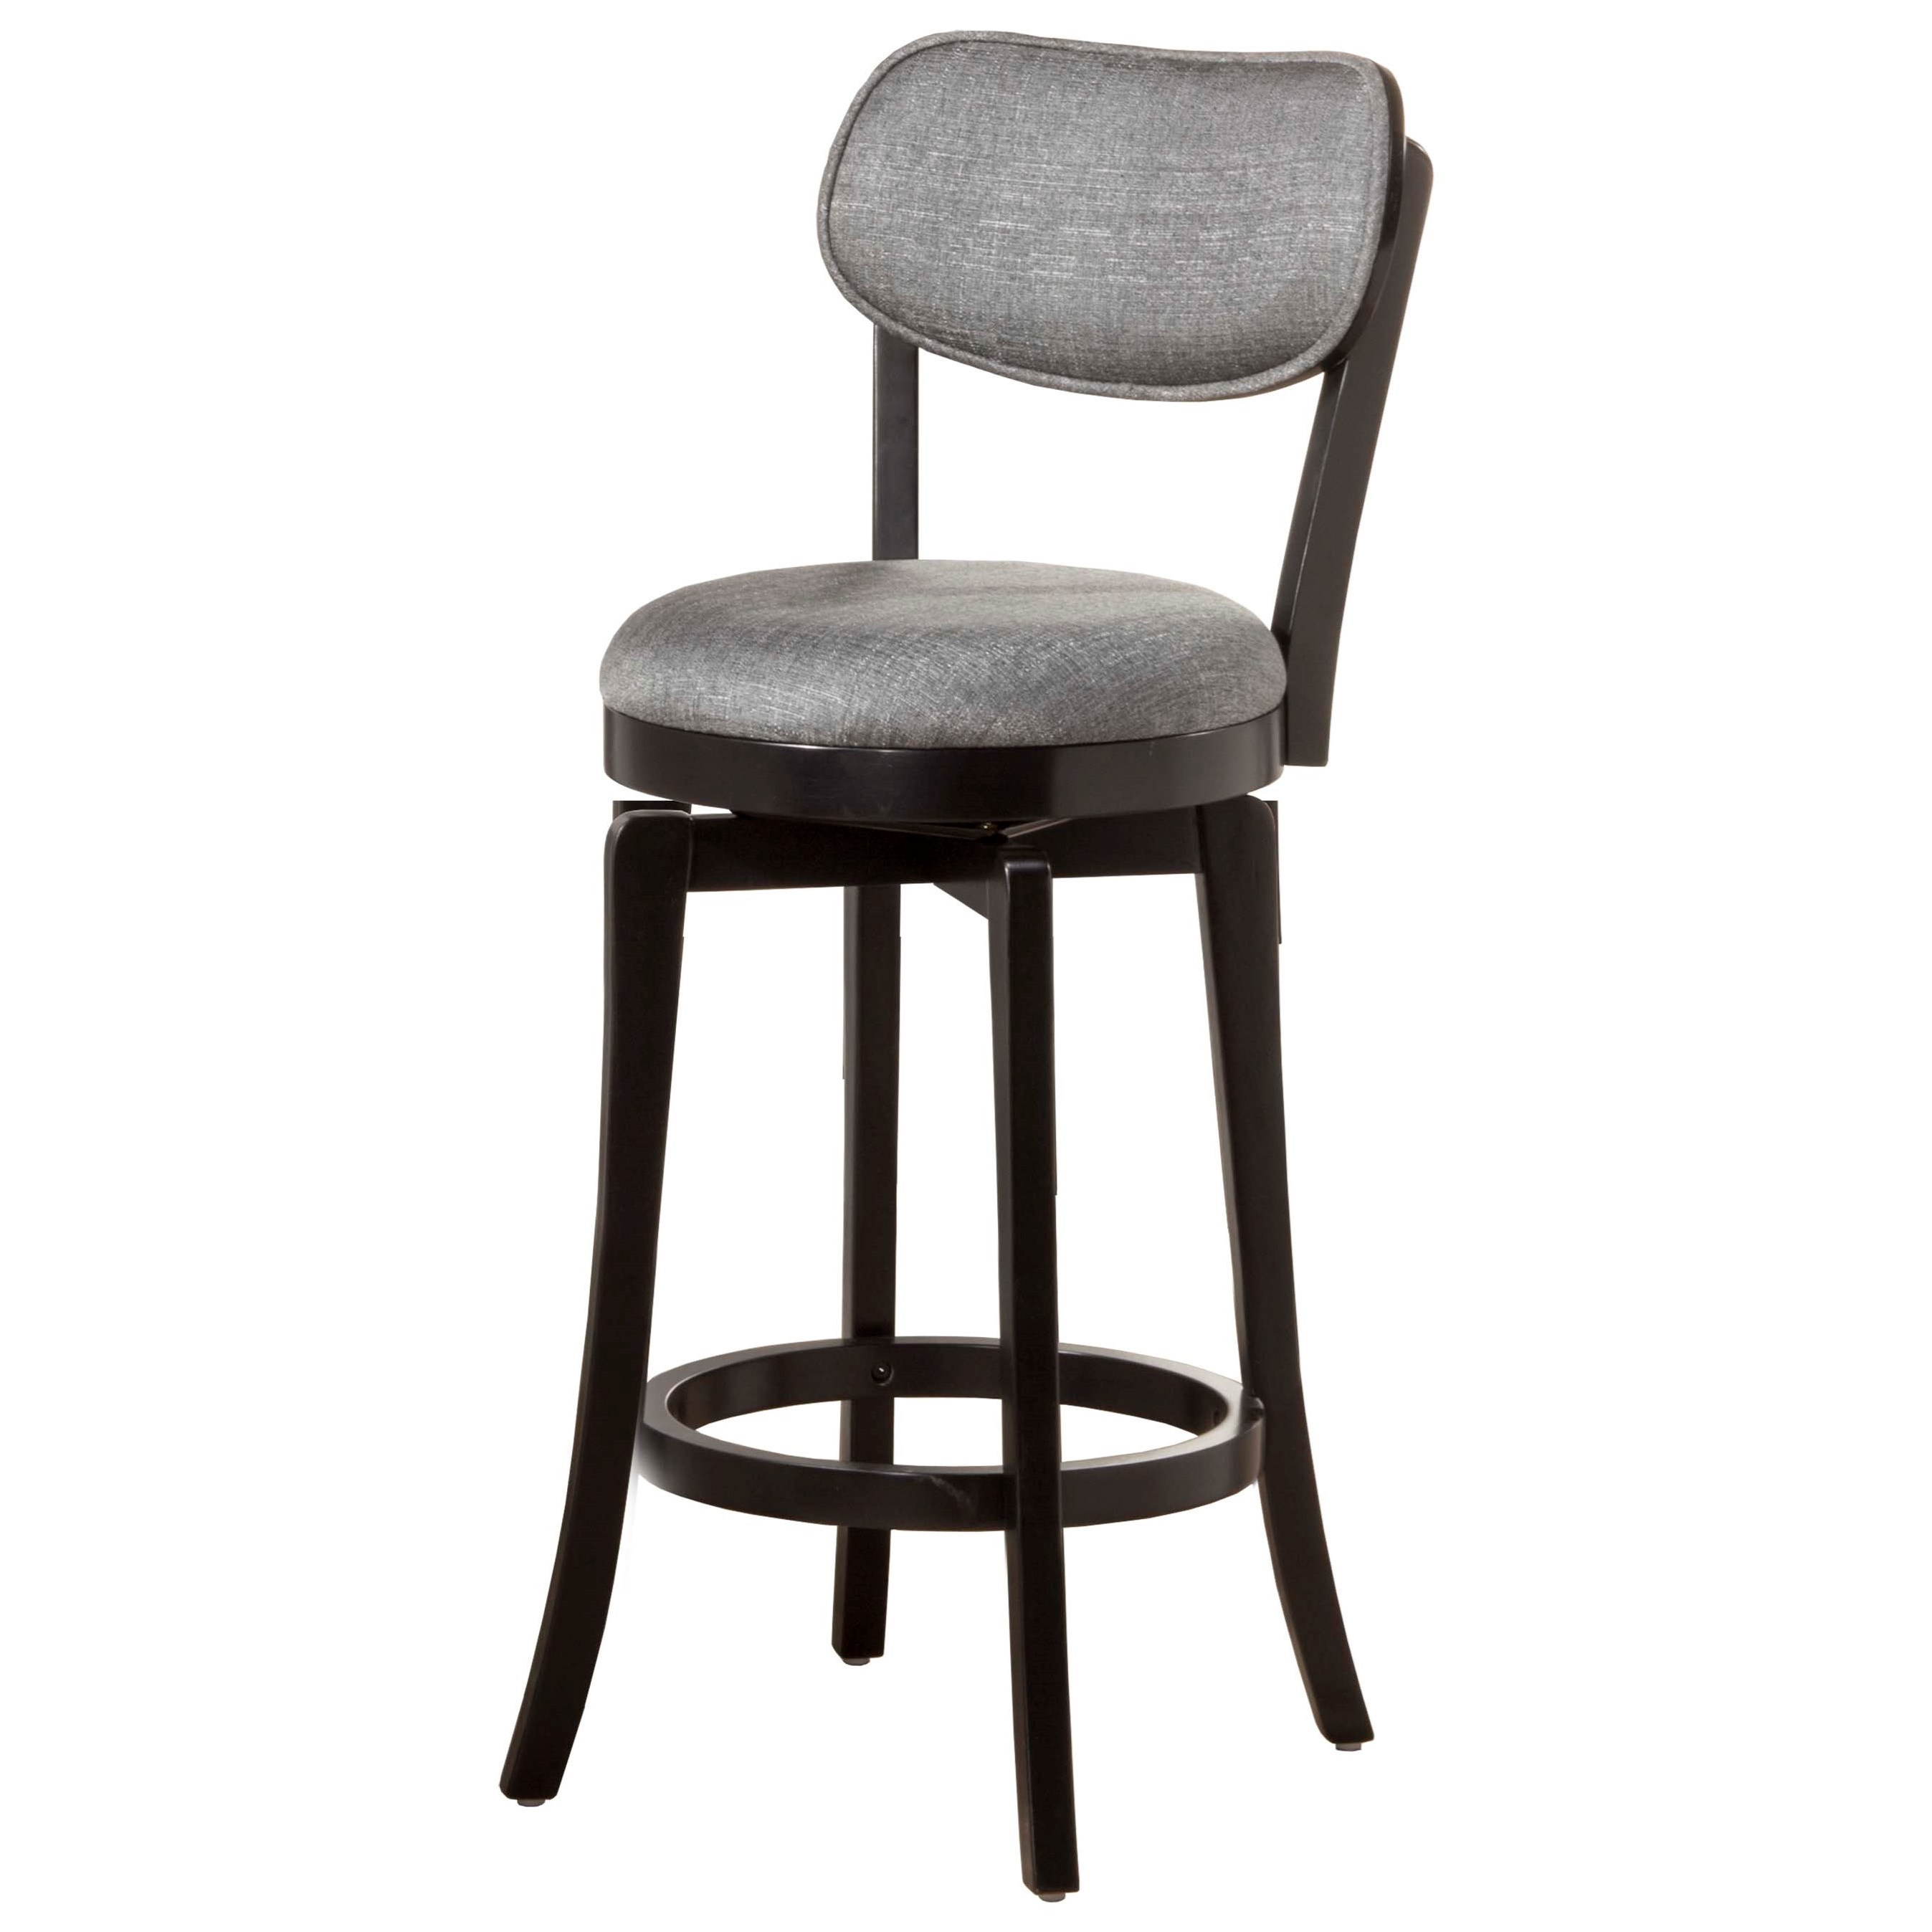 Bright Colored Bar Stools Hillsdale Wood Stools 4037 827 Swivel Counter Stool With